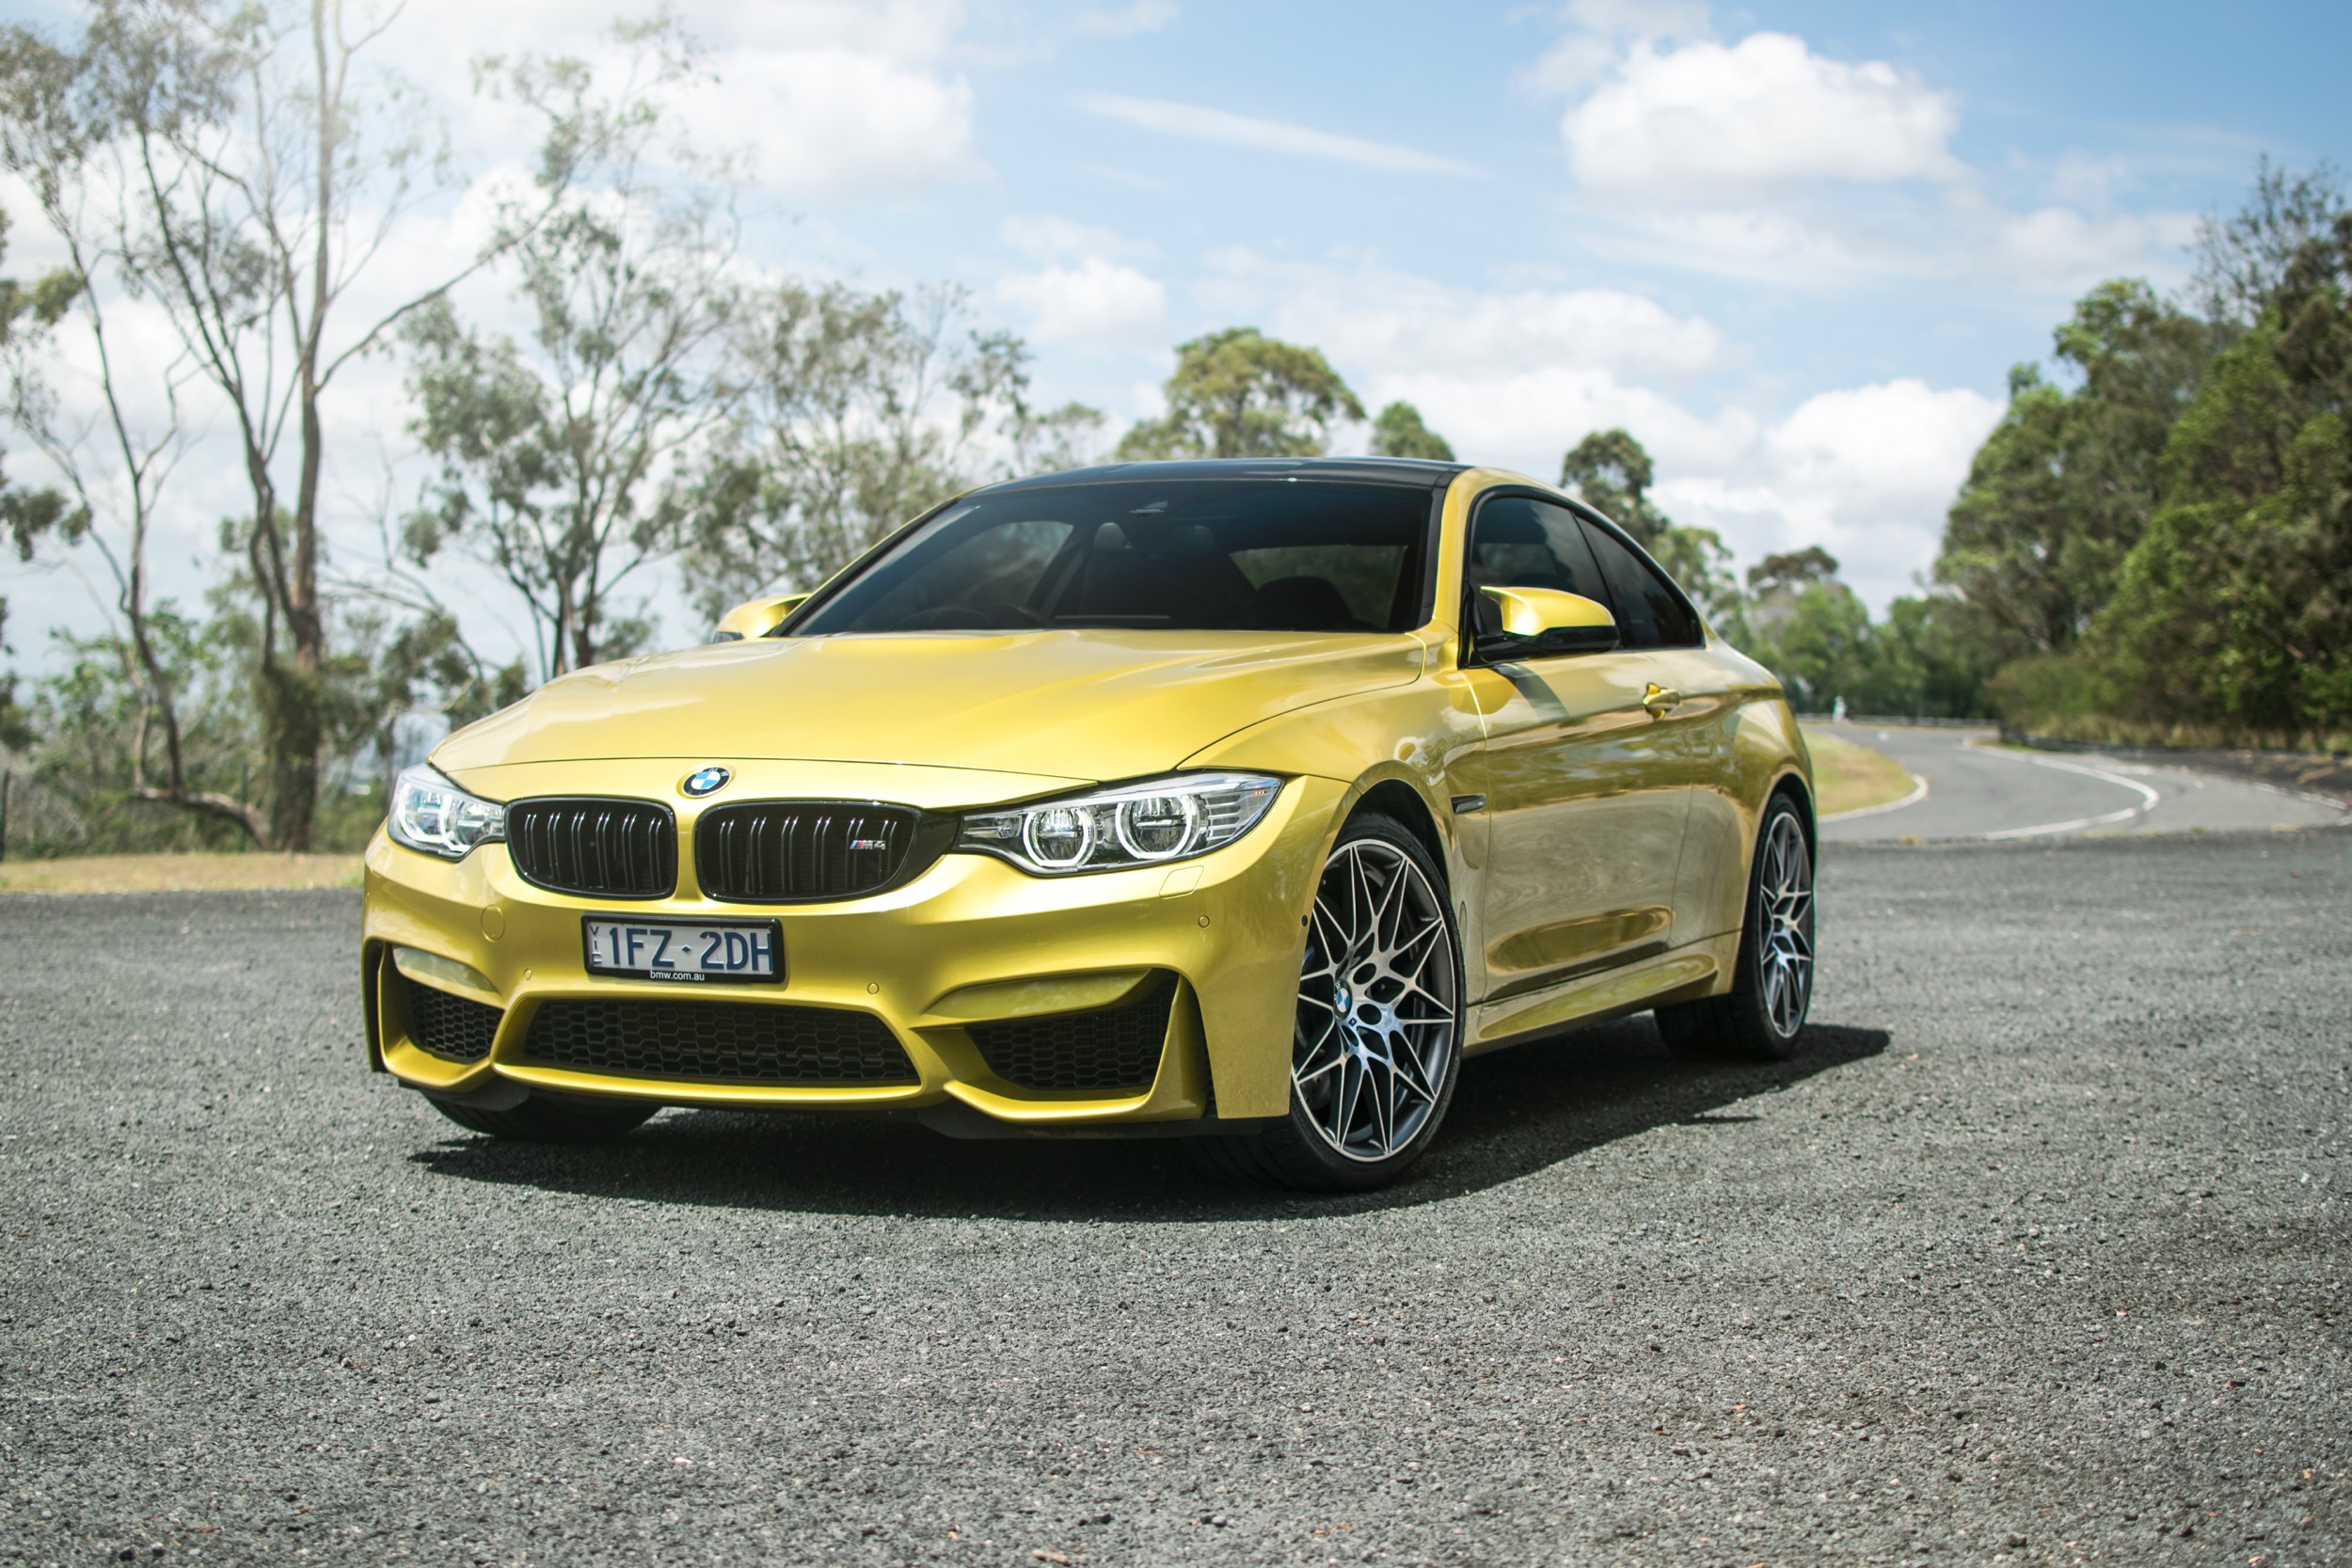 News 4 Tucson >> BMW M4 Competition v Mercedes-AMG C63 S Coupe road comparison - Photos